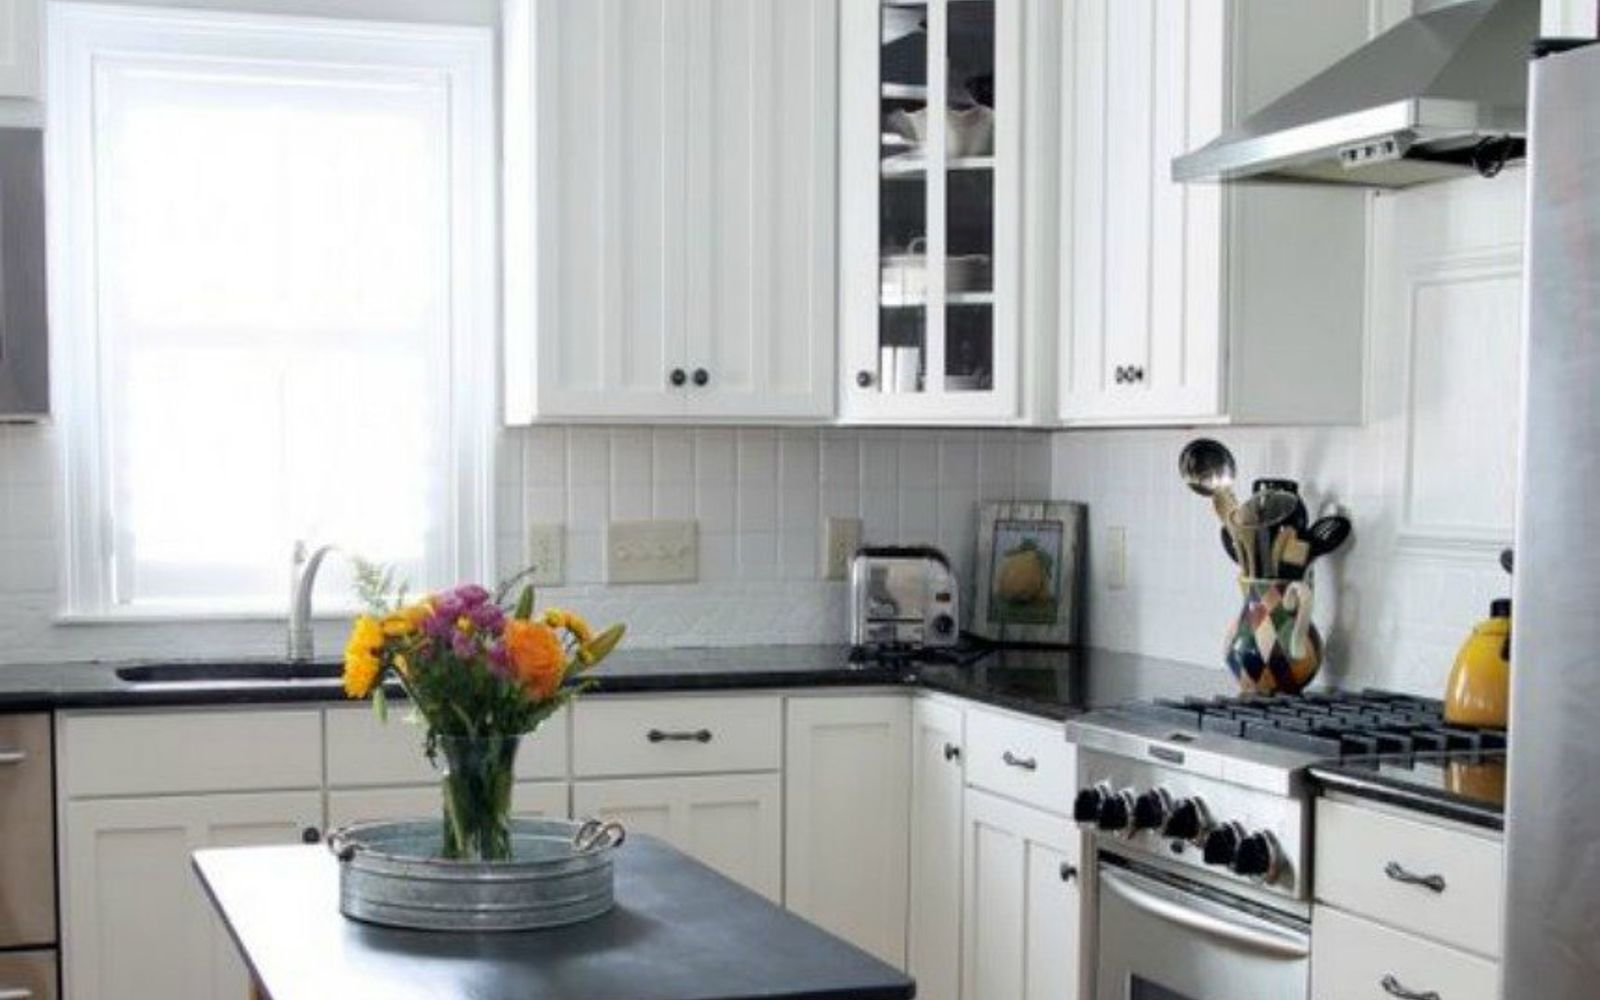 11 gorgeous ways to transform your backsplash without replacing insulation in kitchen backsplash doityourself